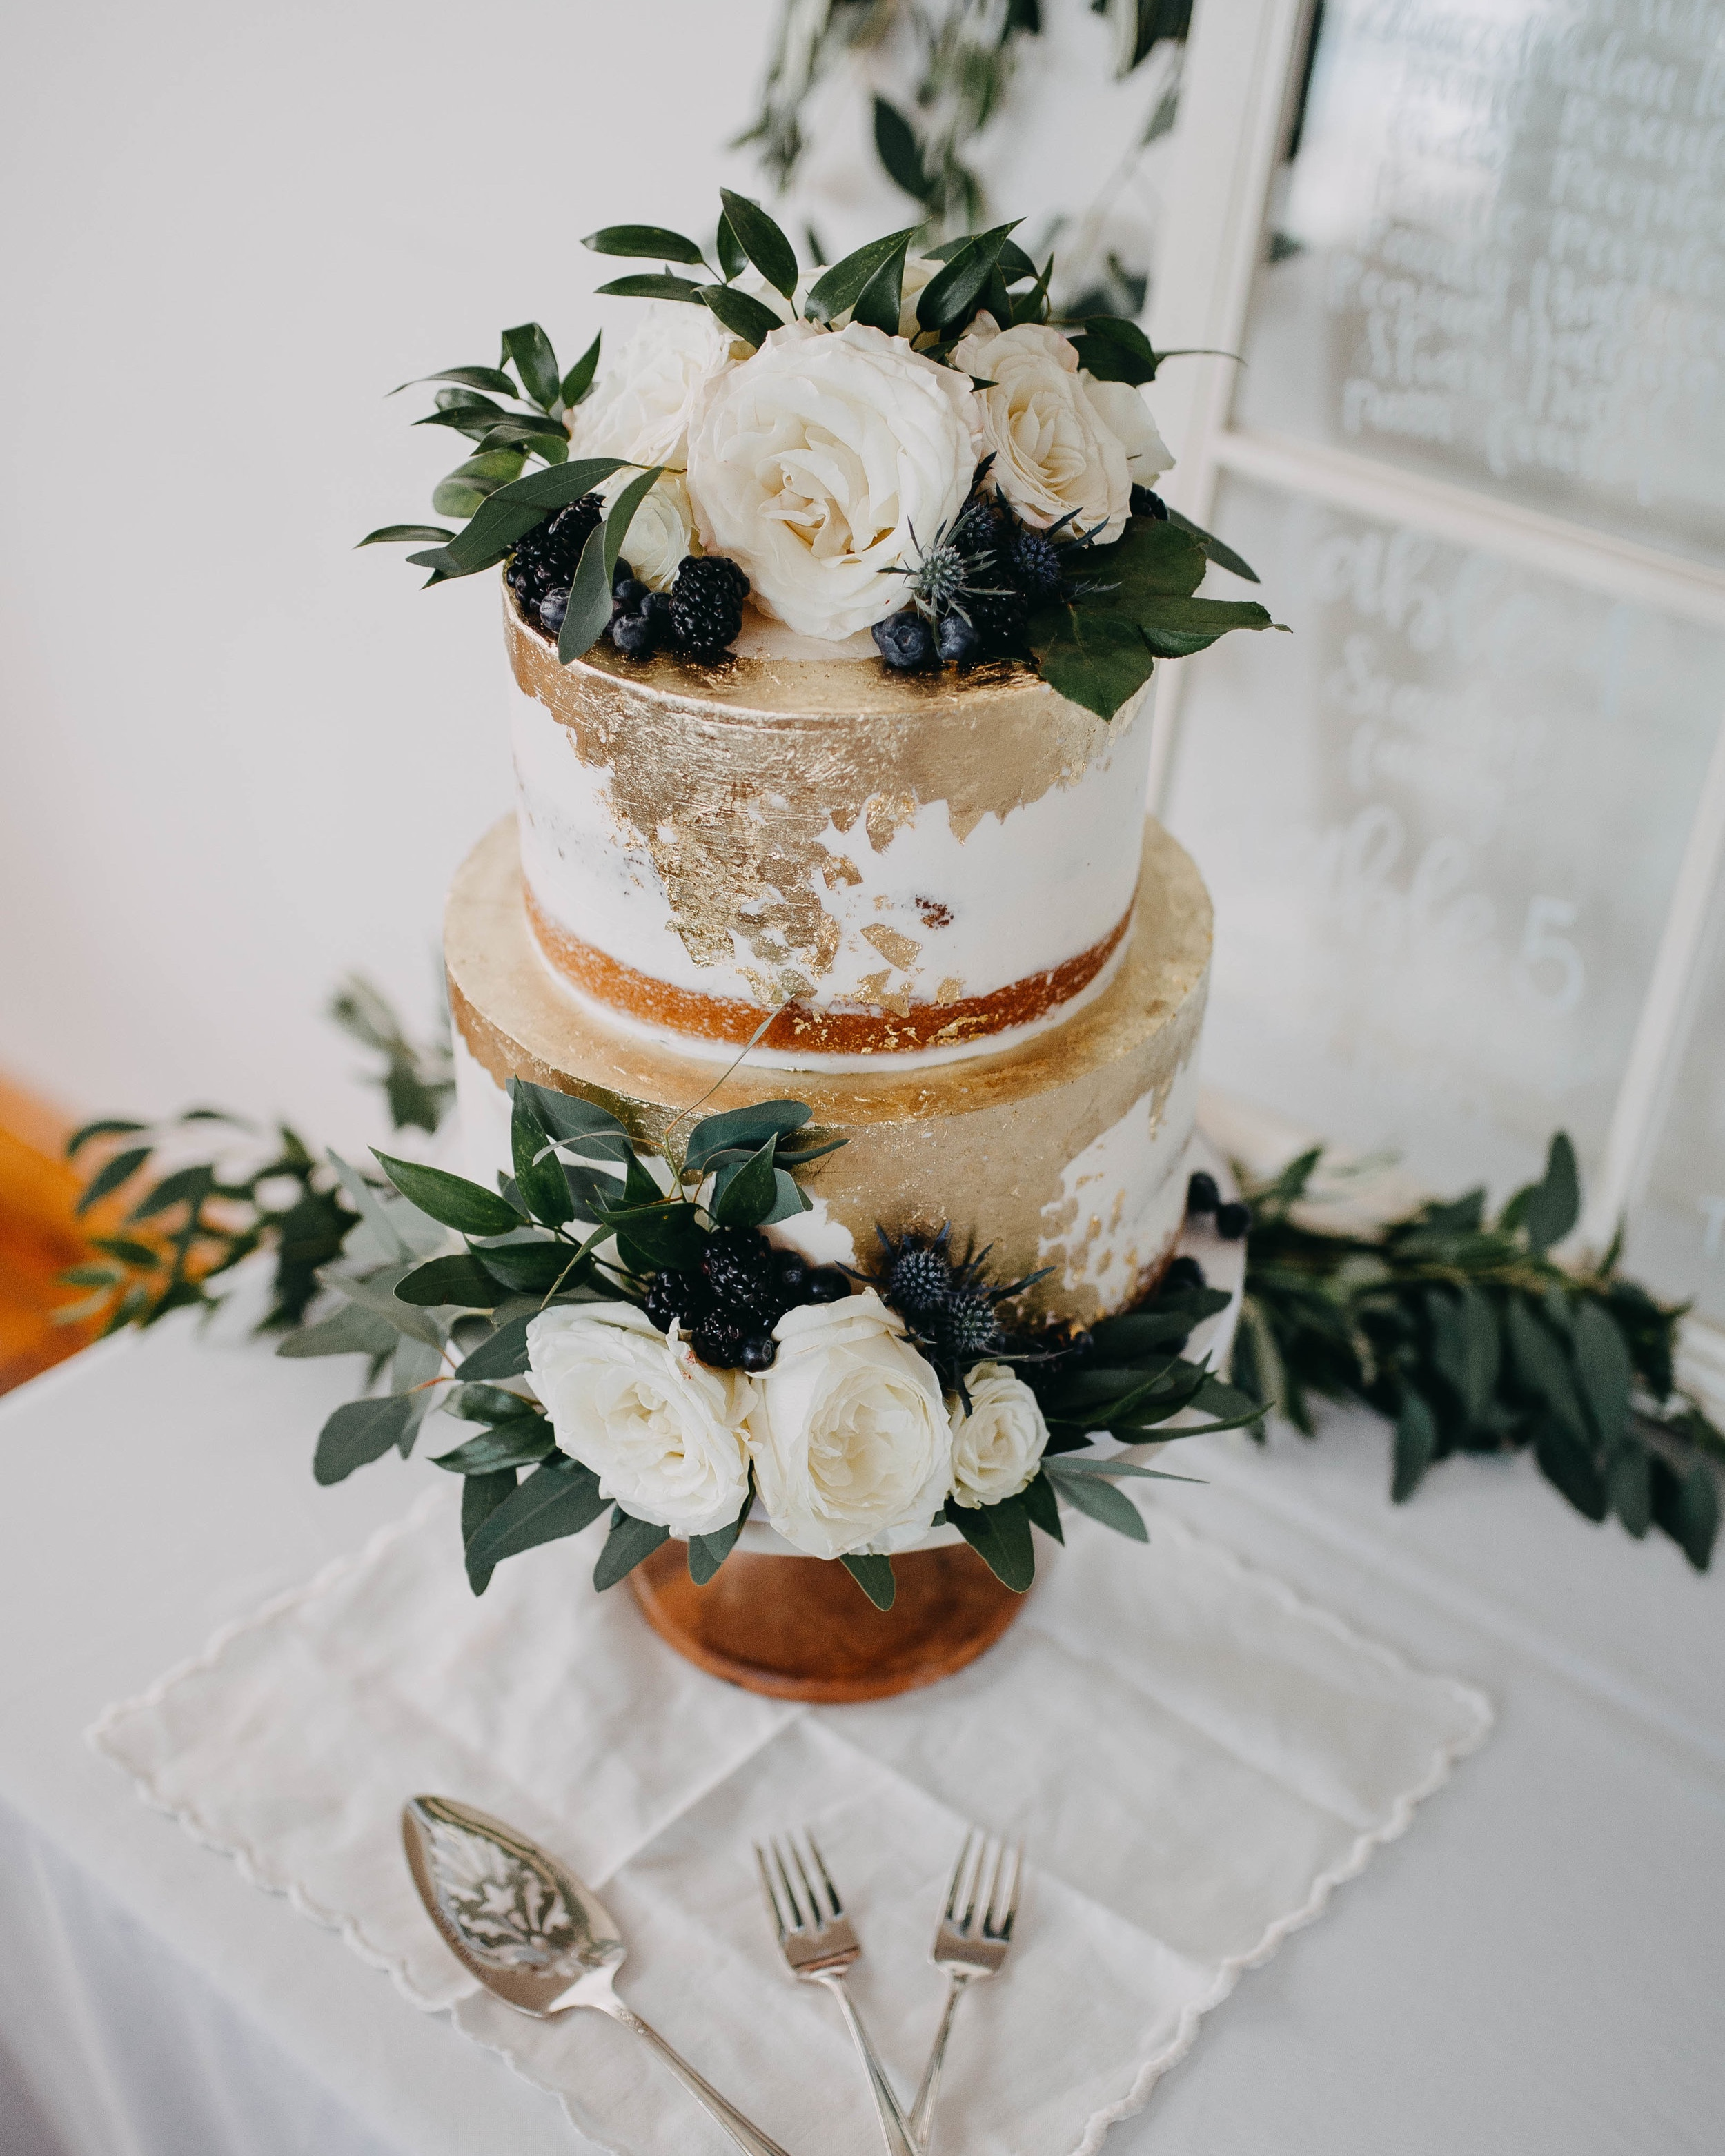 Blue thistle Cakes -